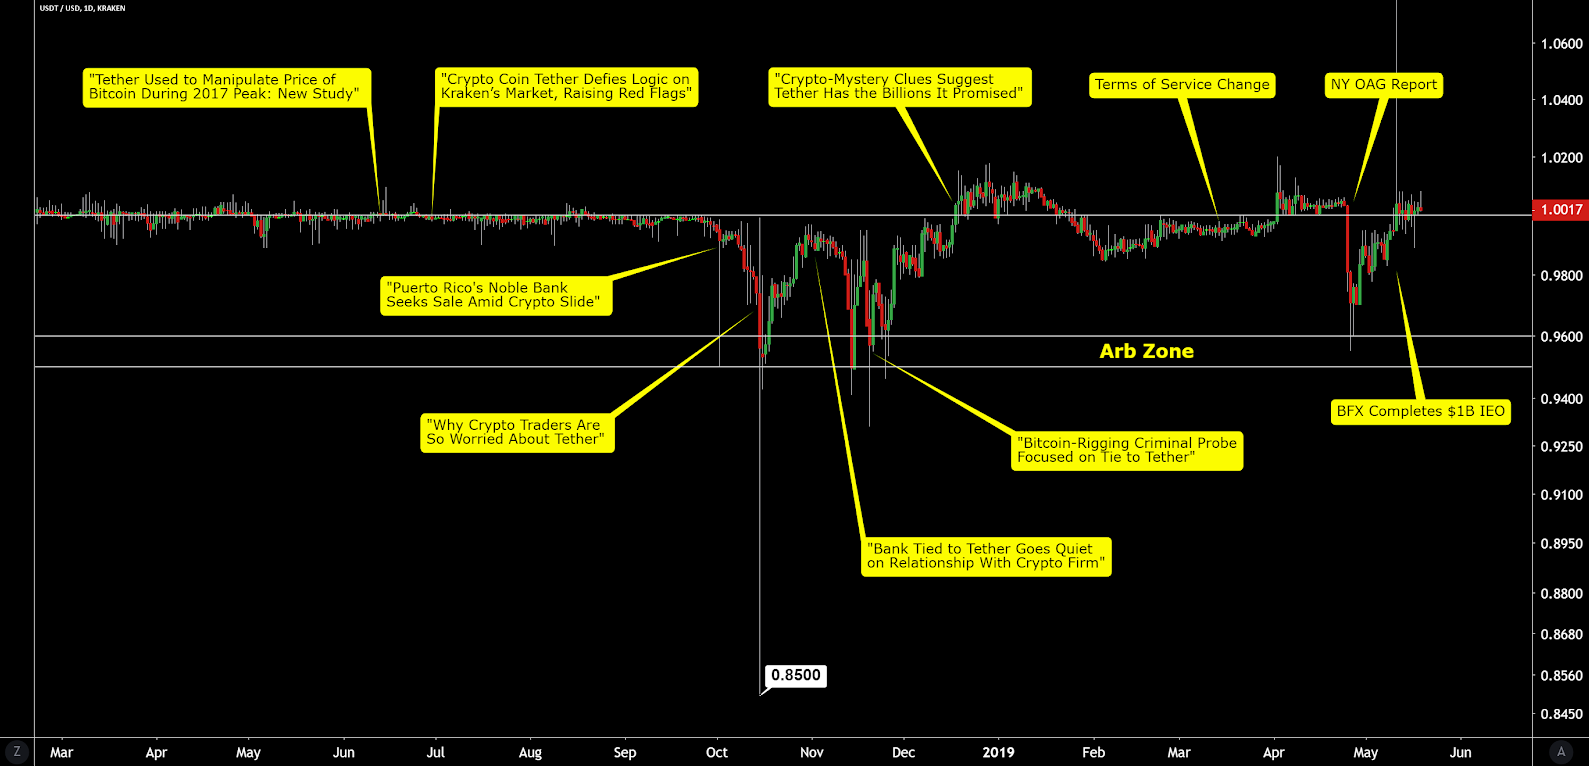 Bitcoin Price Analysis - Network fundamentals continue to